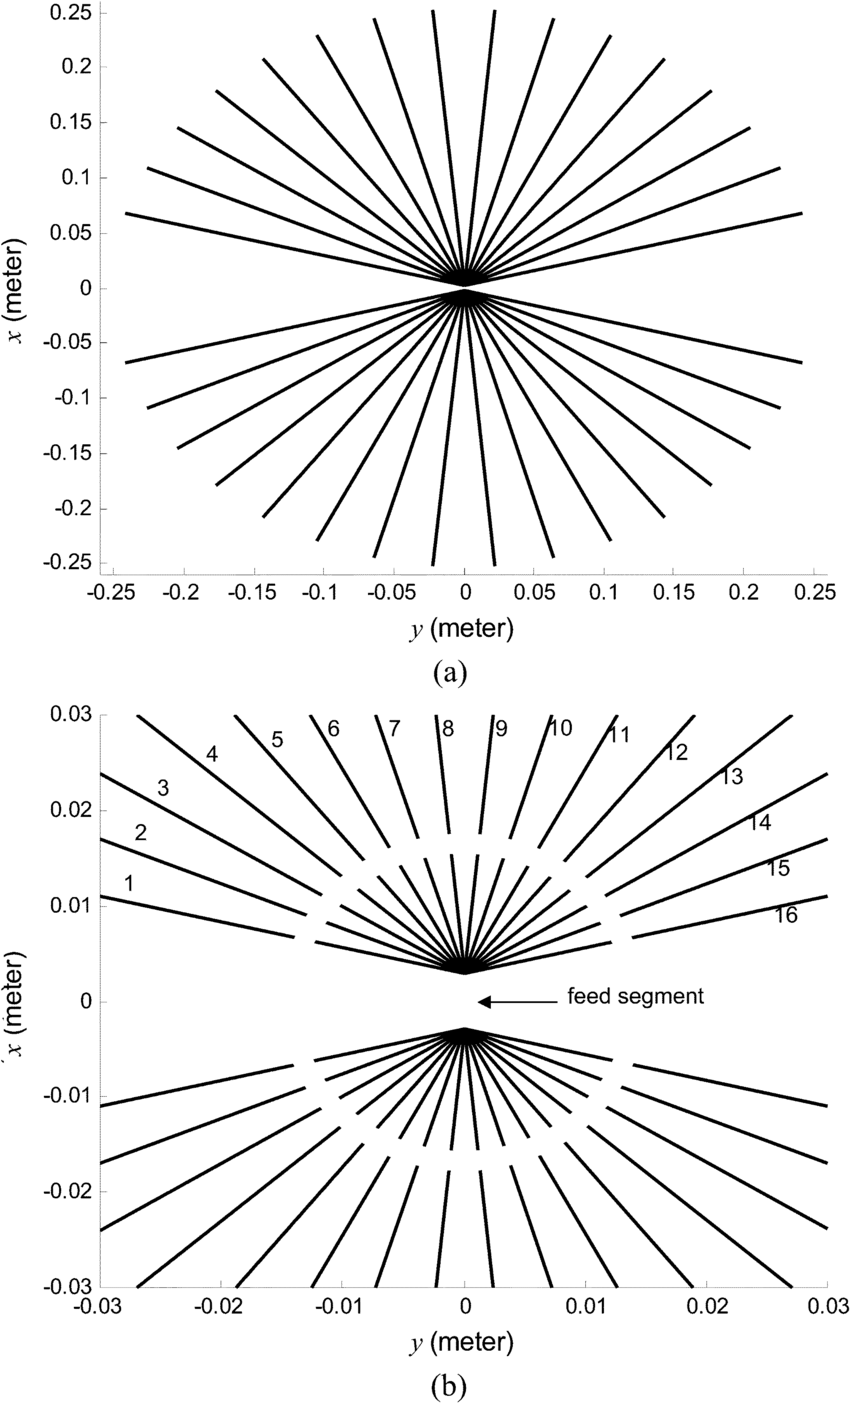 hight resolution of  a geometry of the proposed adaptive wire bow tie antenna used in simulations